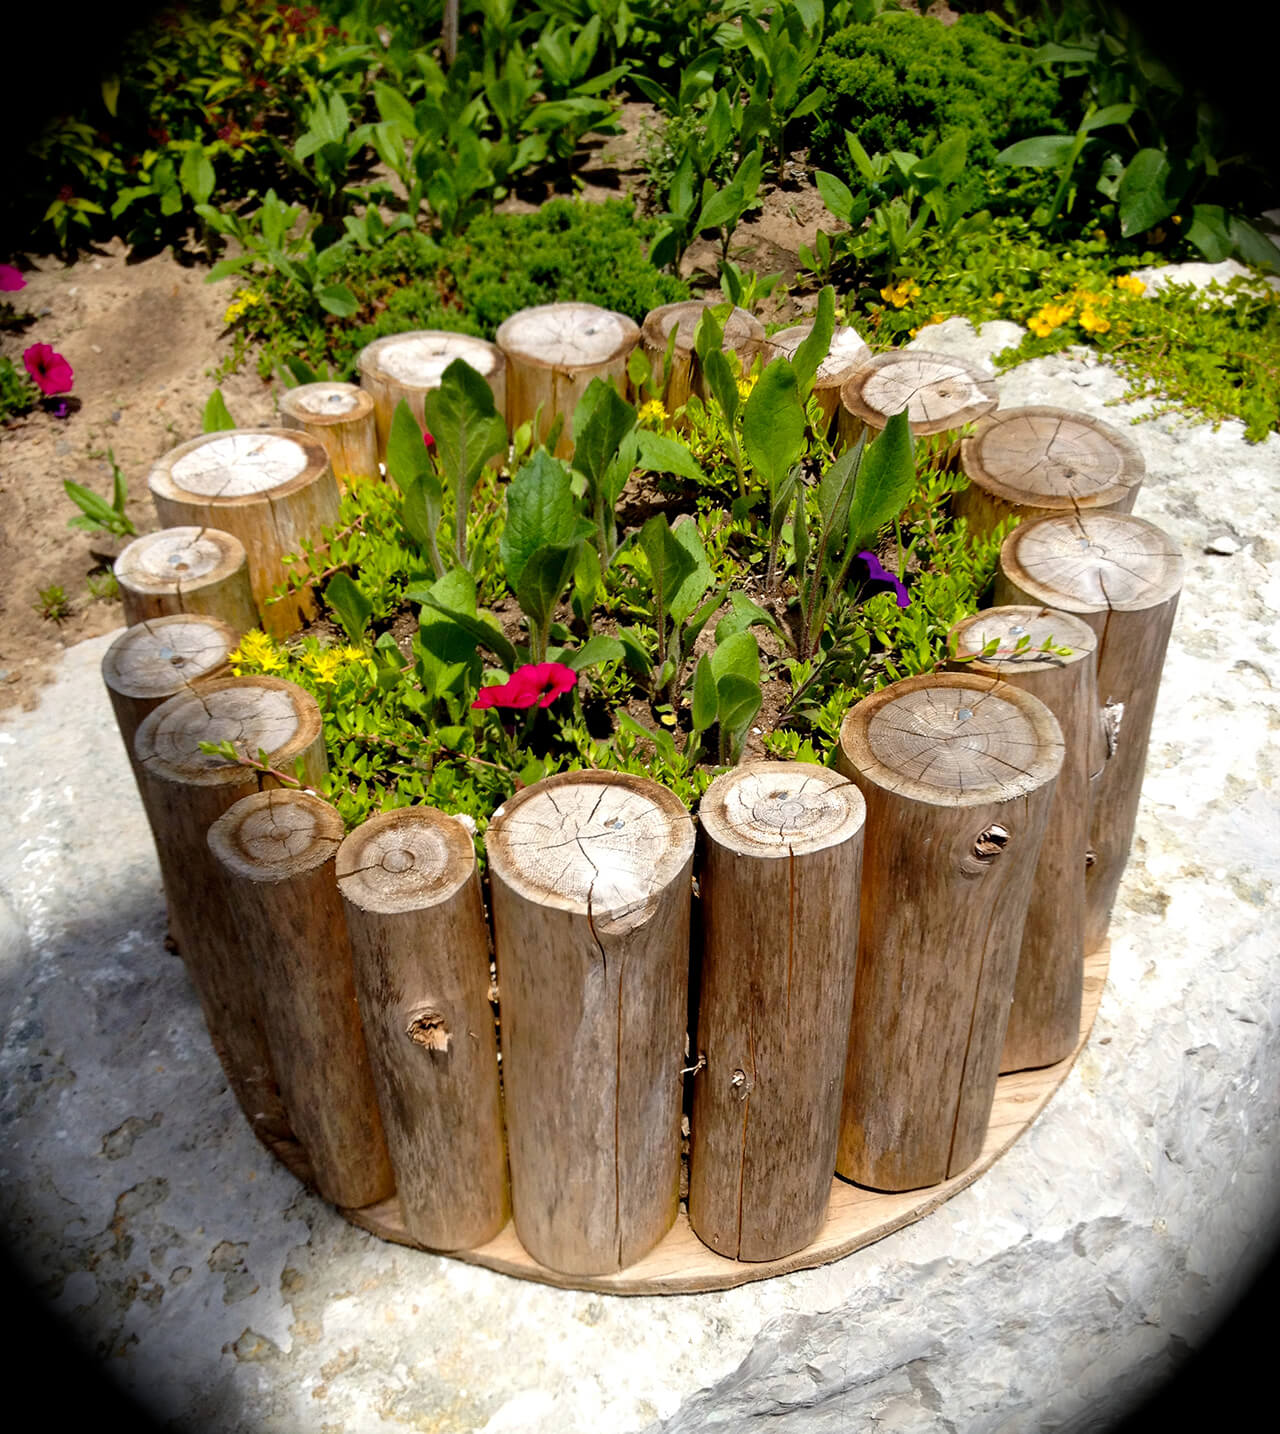 DIY Rustic Flower Planter with Logs